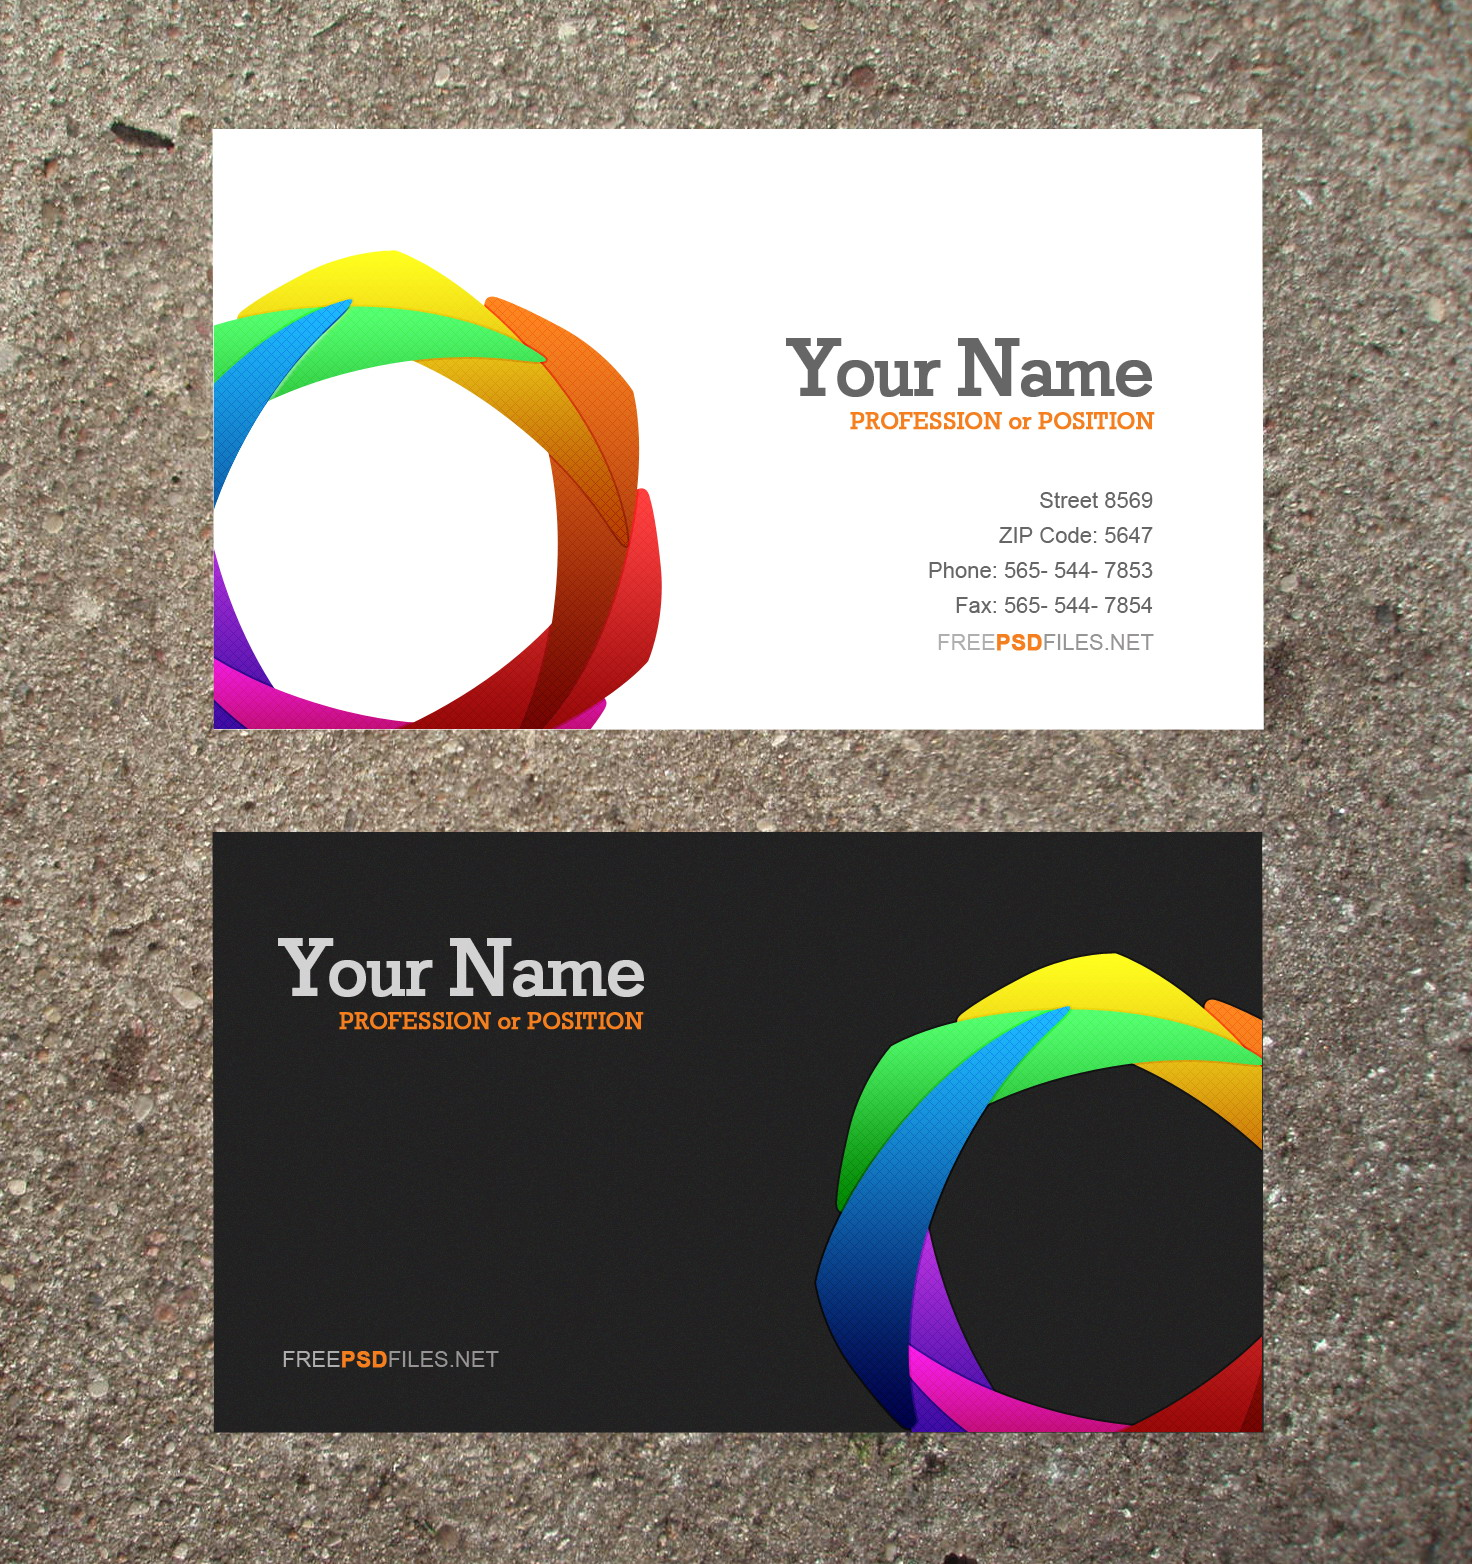 Template for business cards free download dawaydabrowa template for business cards free download fbccfo